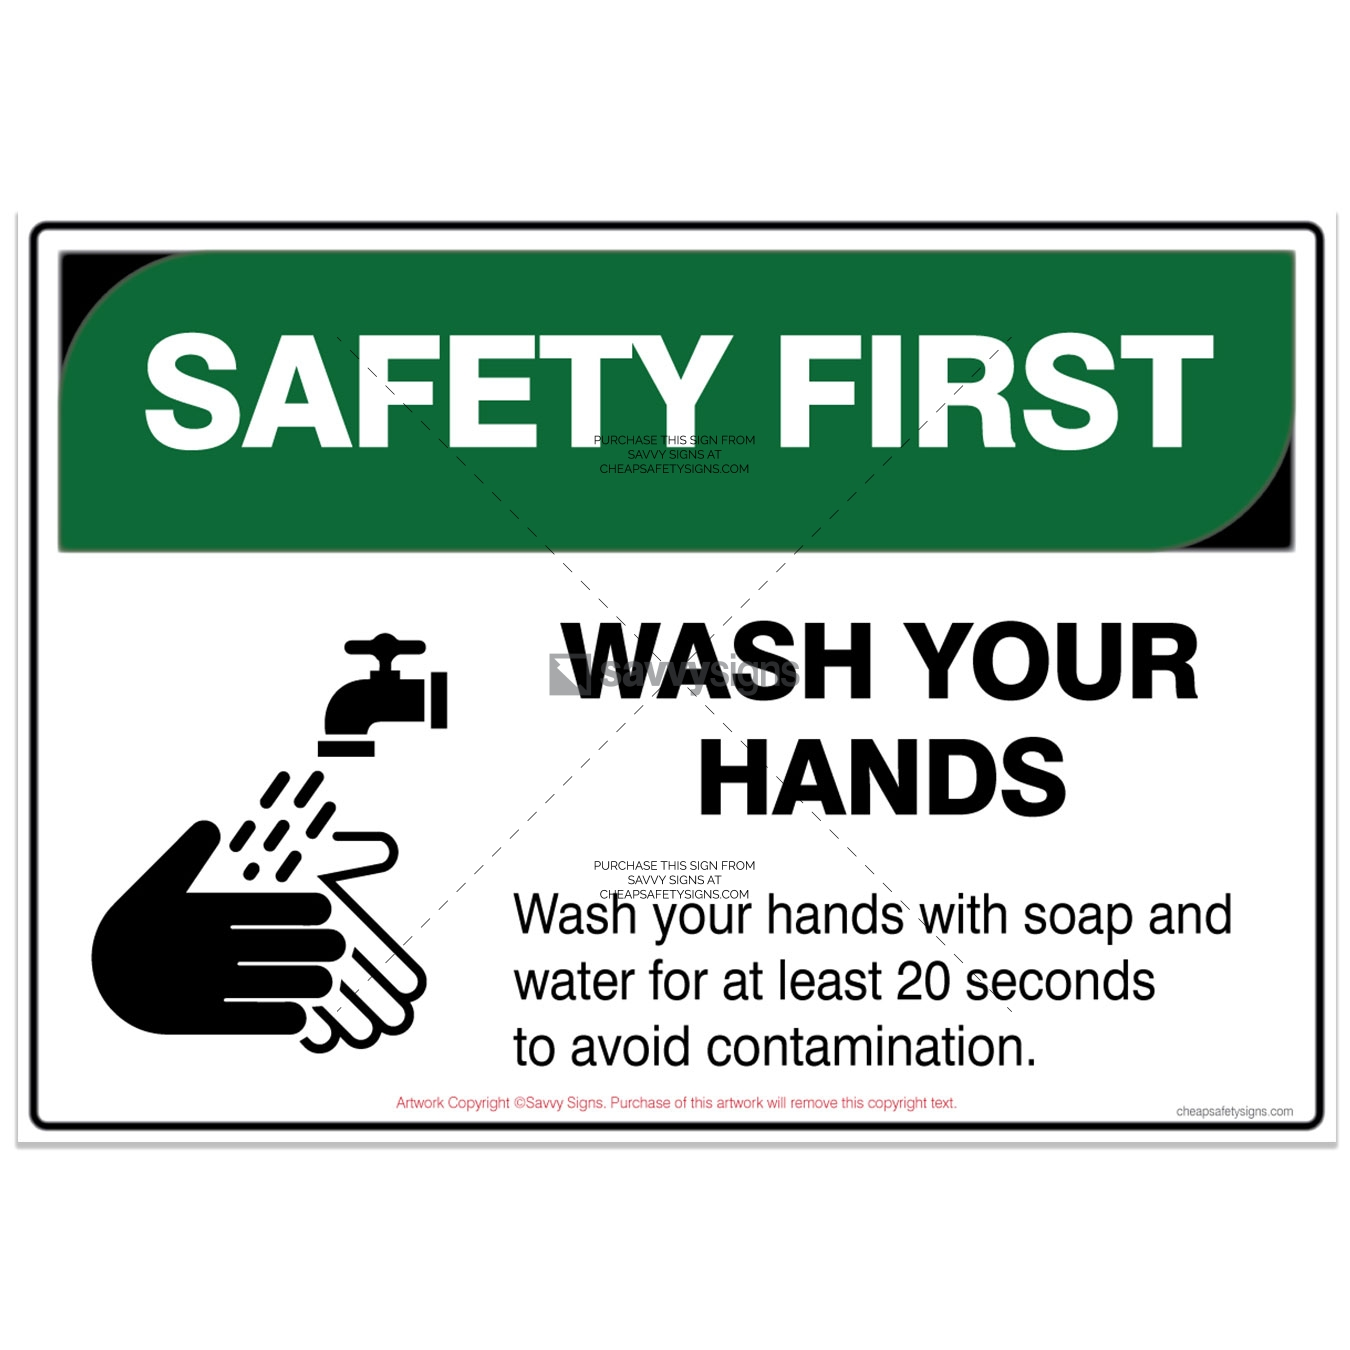 SSSFCOV3L011-COVID19-SAFETY-FIRST-Wash-your-hands-prevent-contamination-Safety-Signs_vsq2